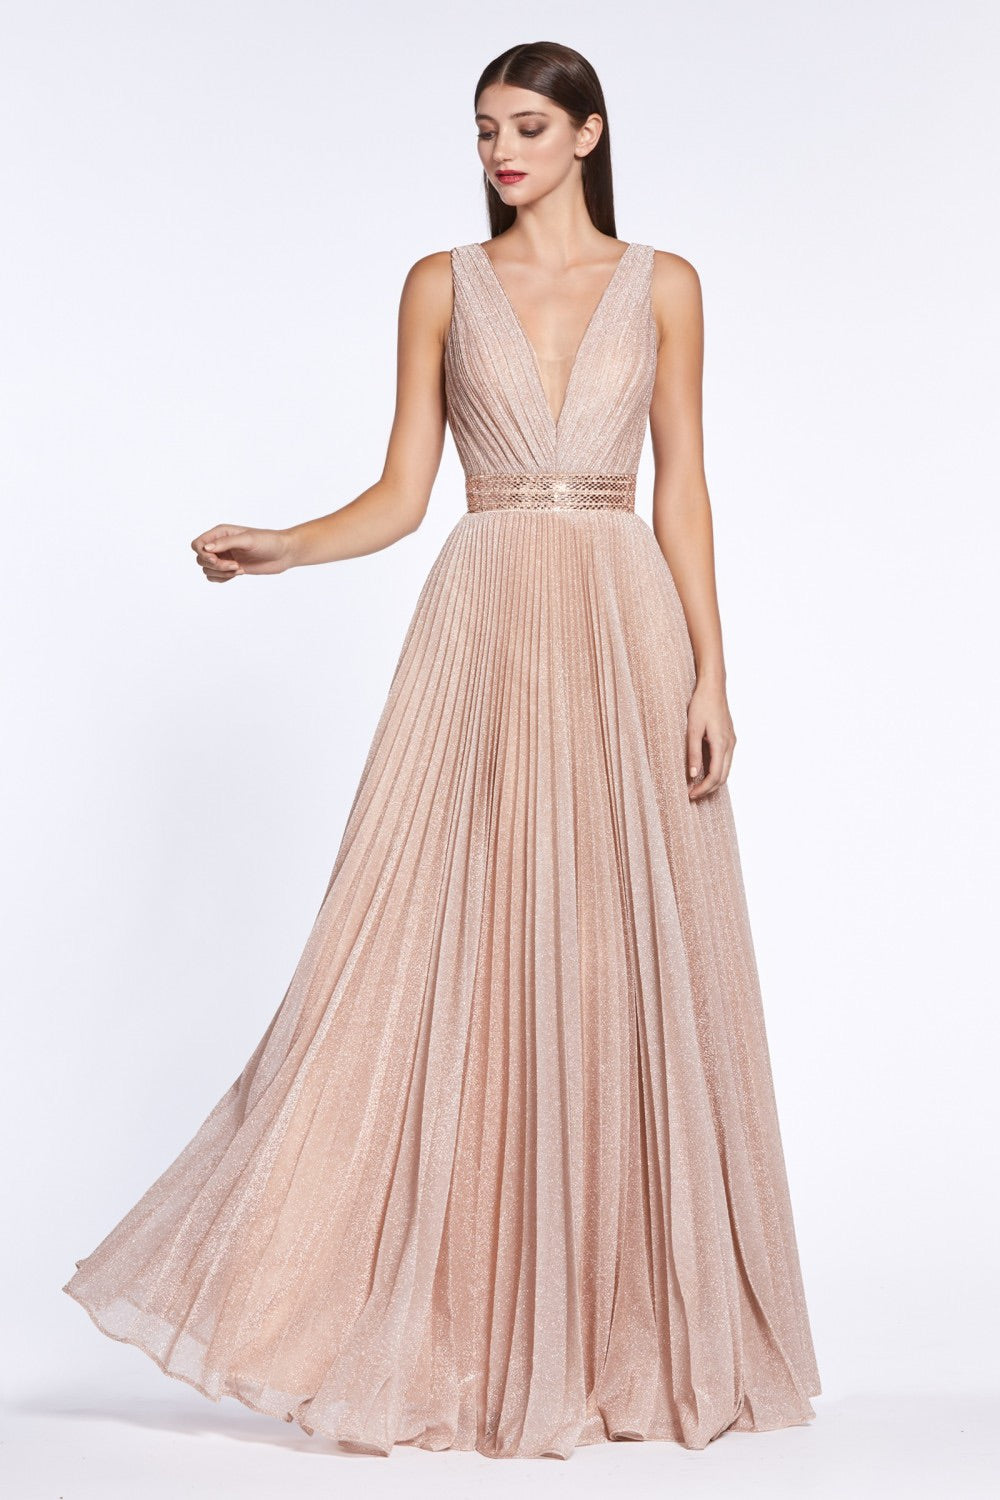 Cinderella Divine CM9086 Evening Dress - CYC Boutique